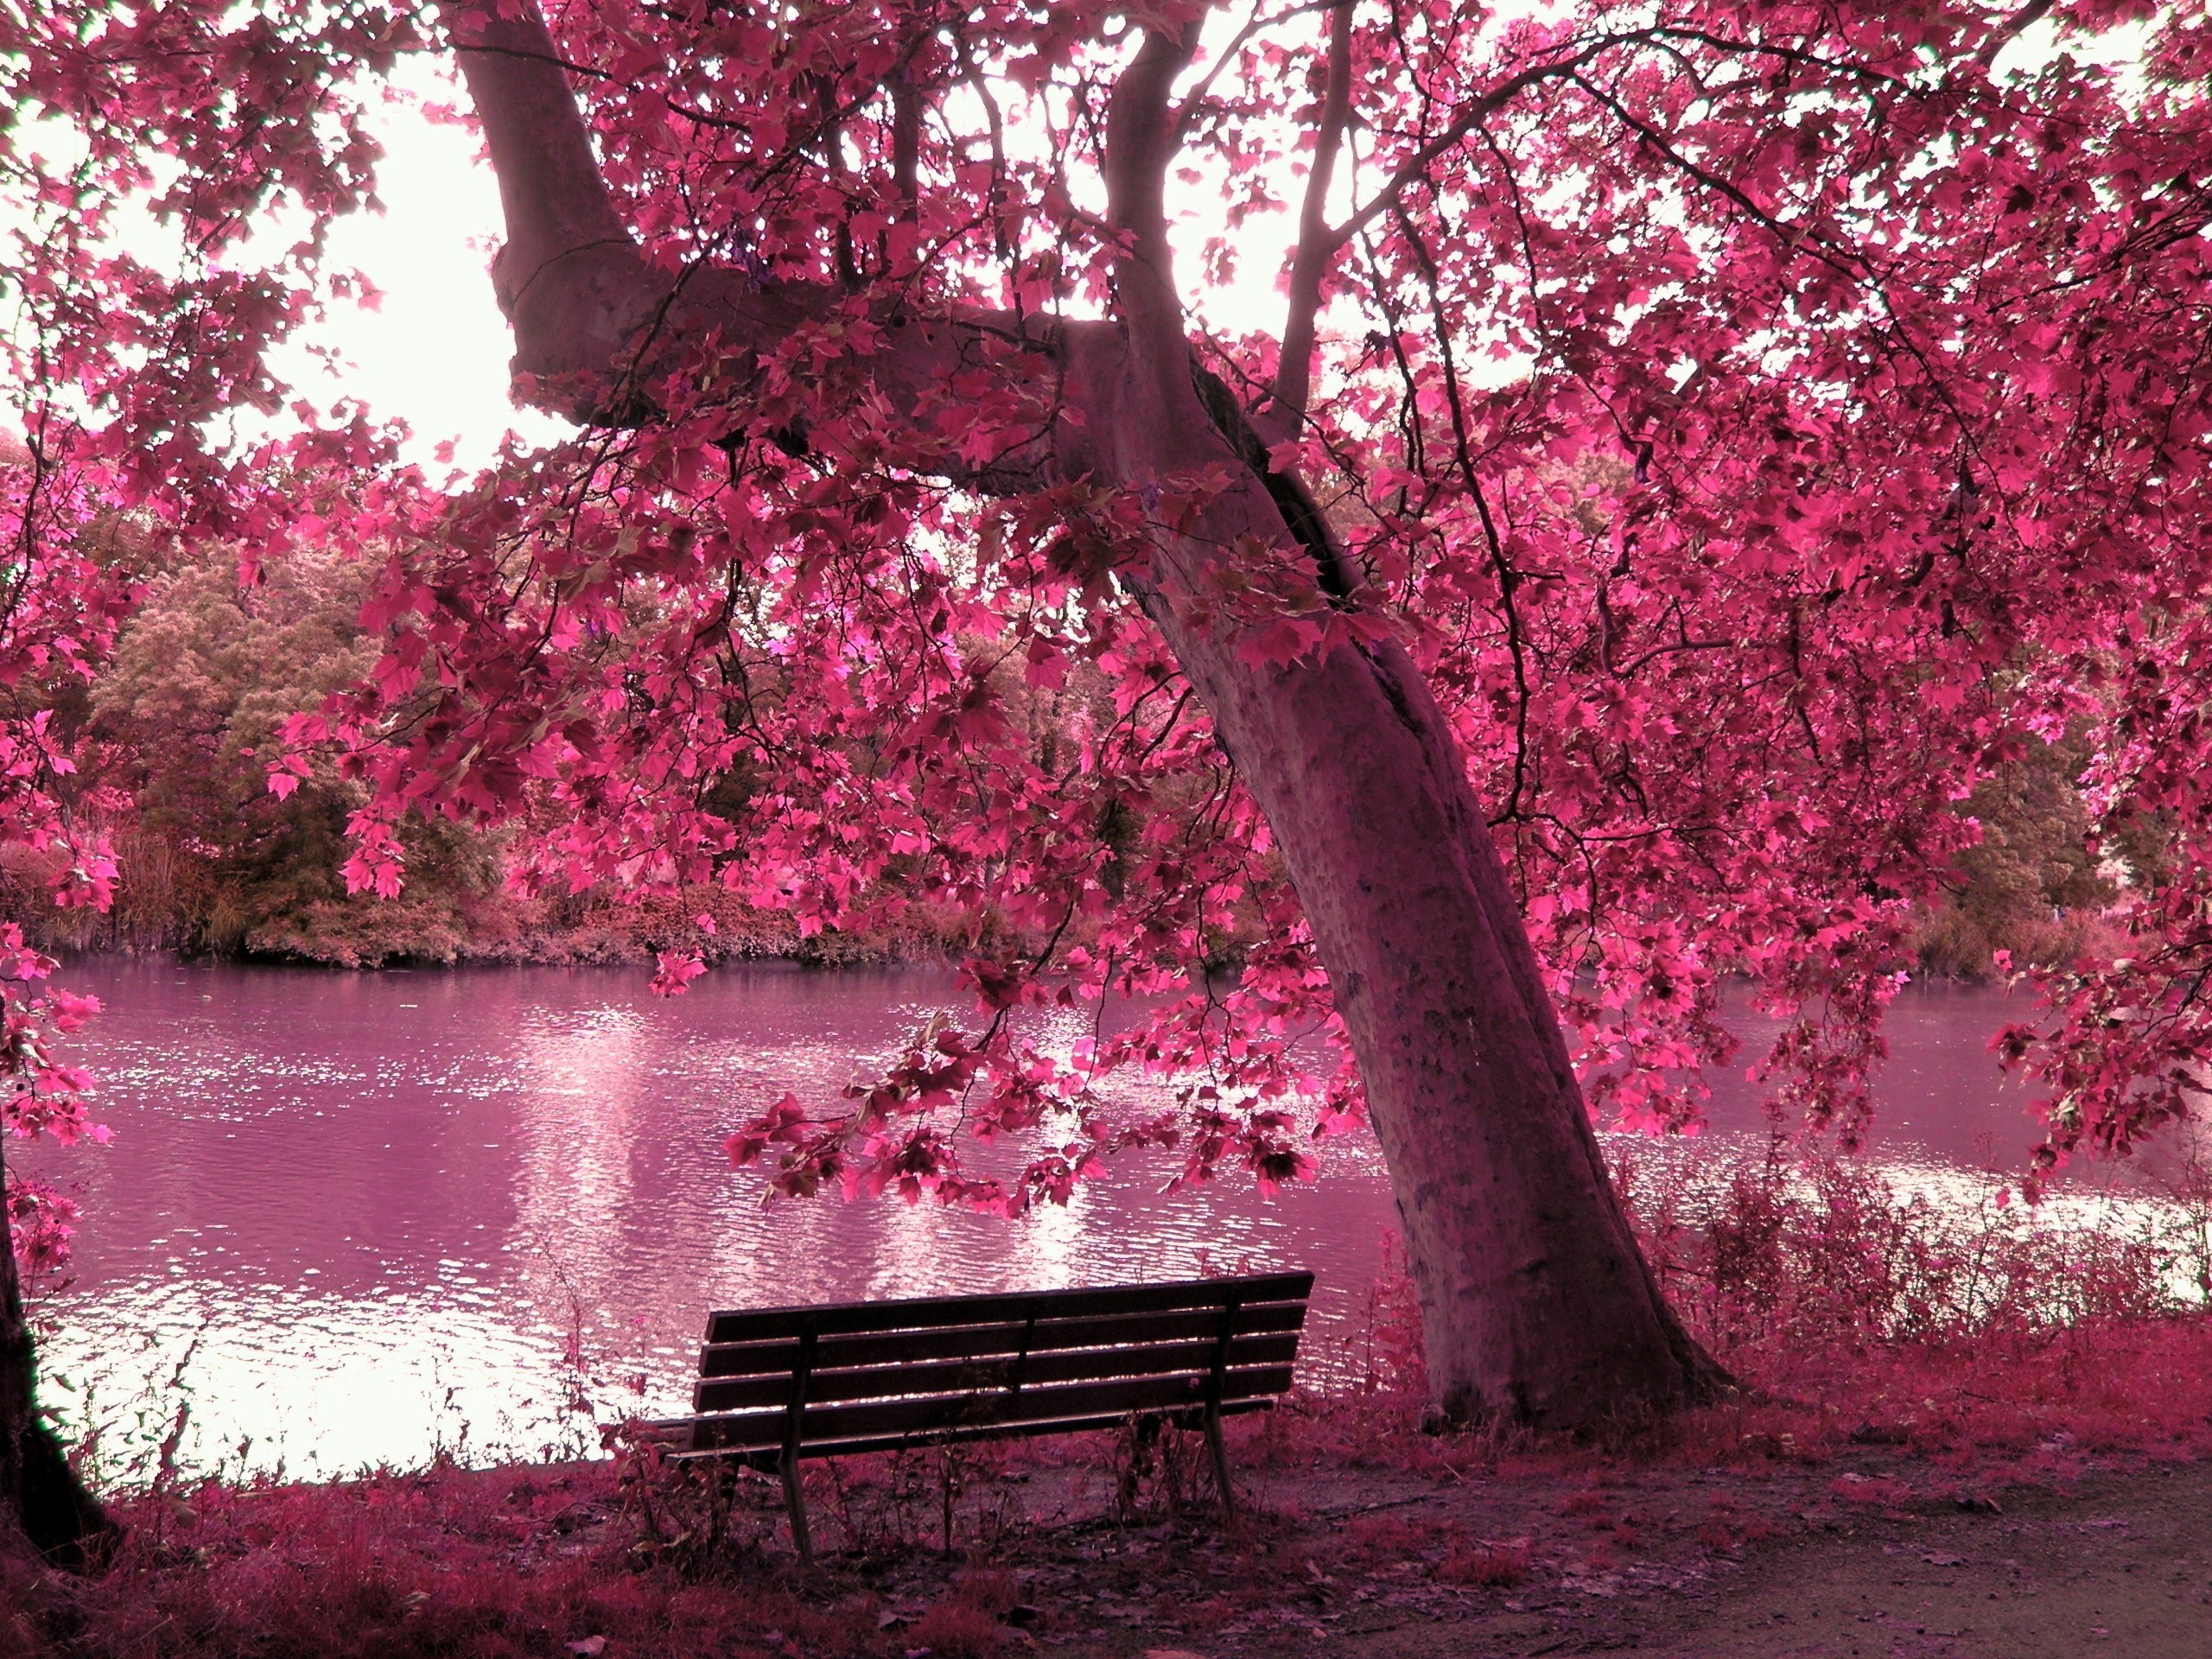 Res: 2560x1920, Trees purple bench lakes wallpaper